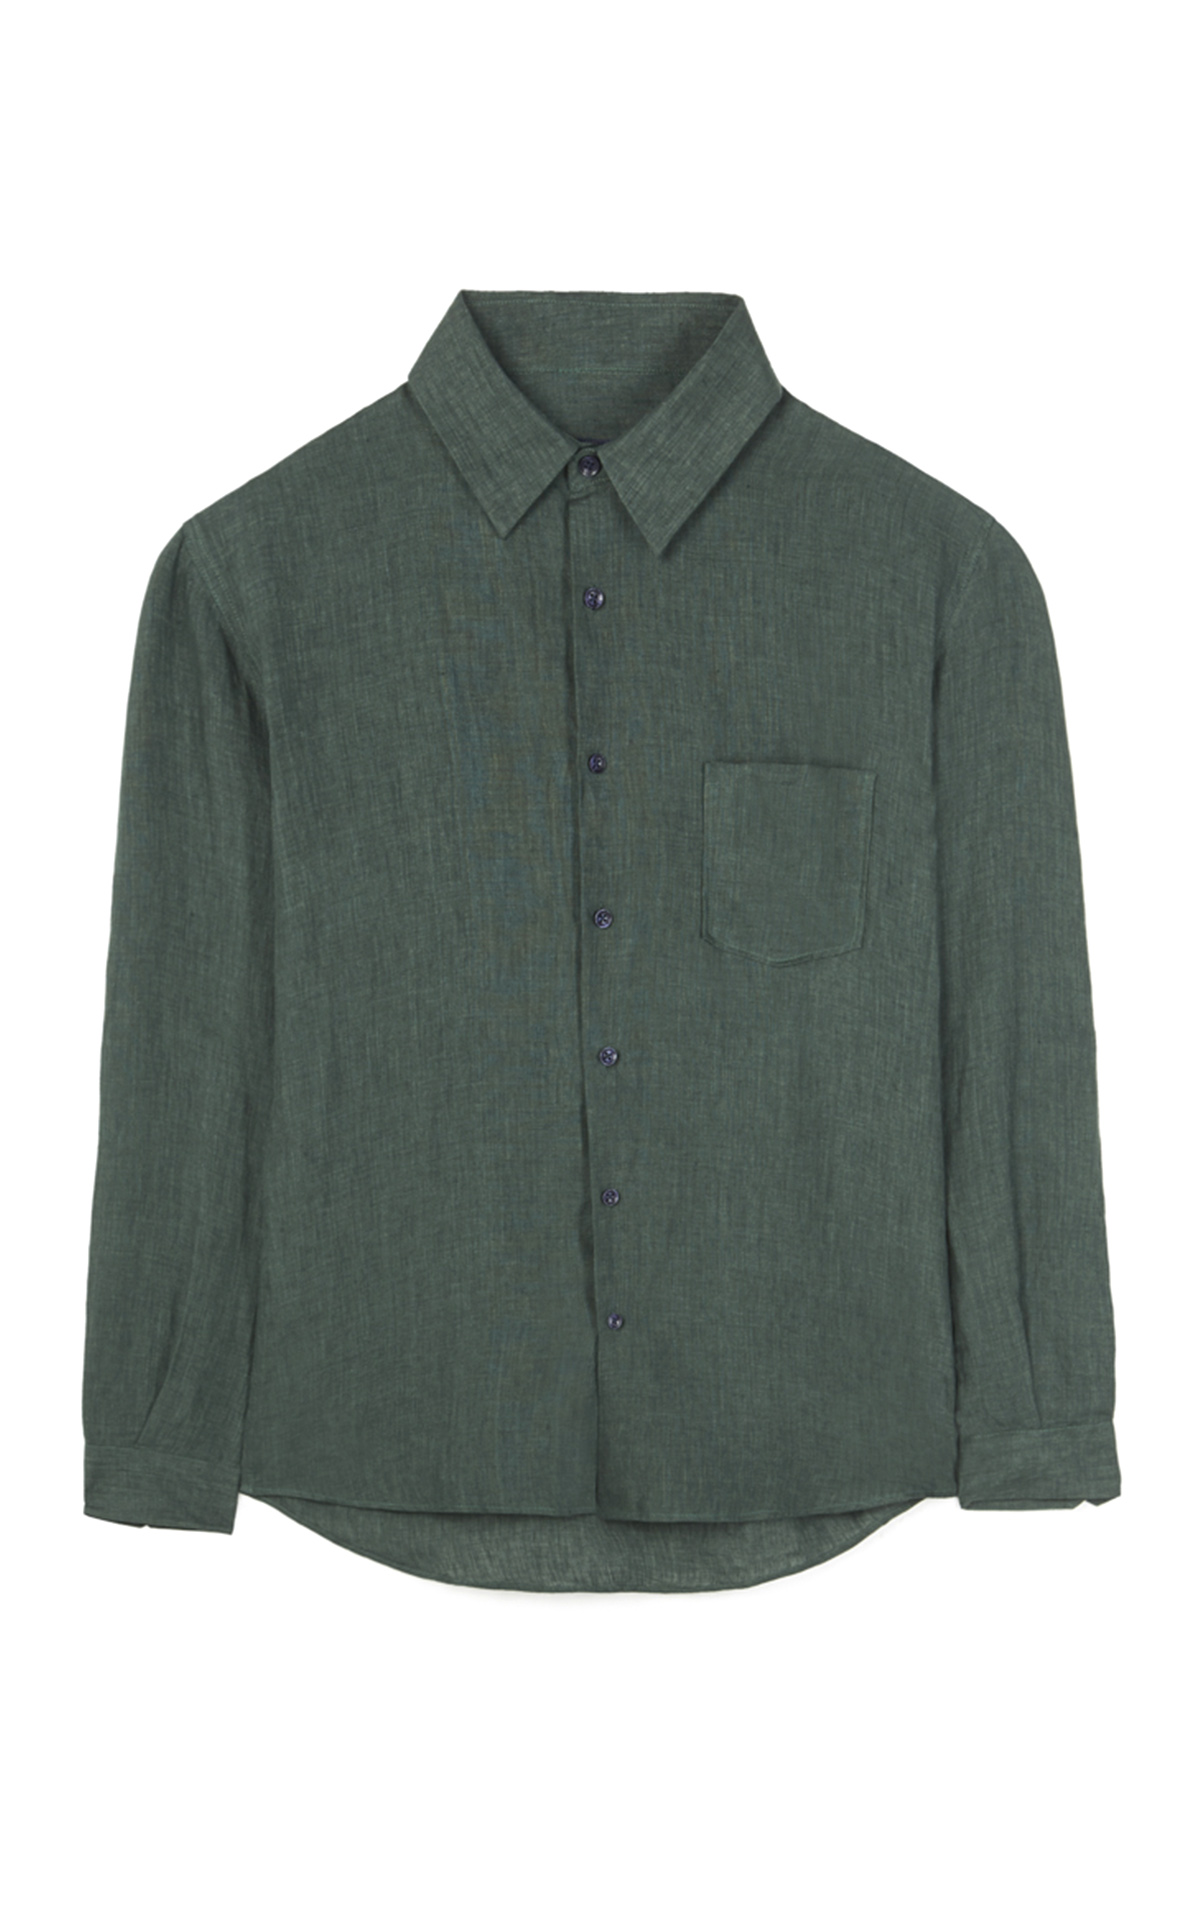 Green linen shirt Adolfo Dominguez